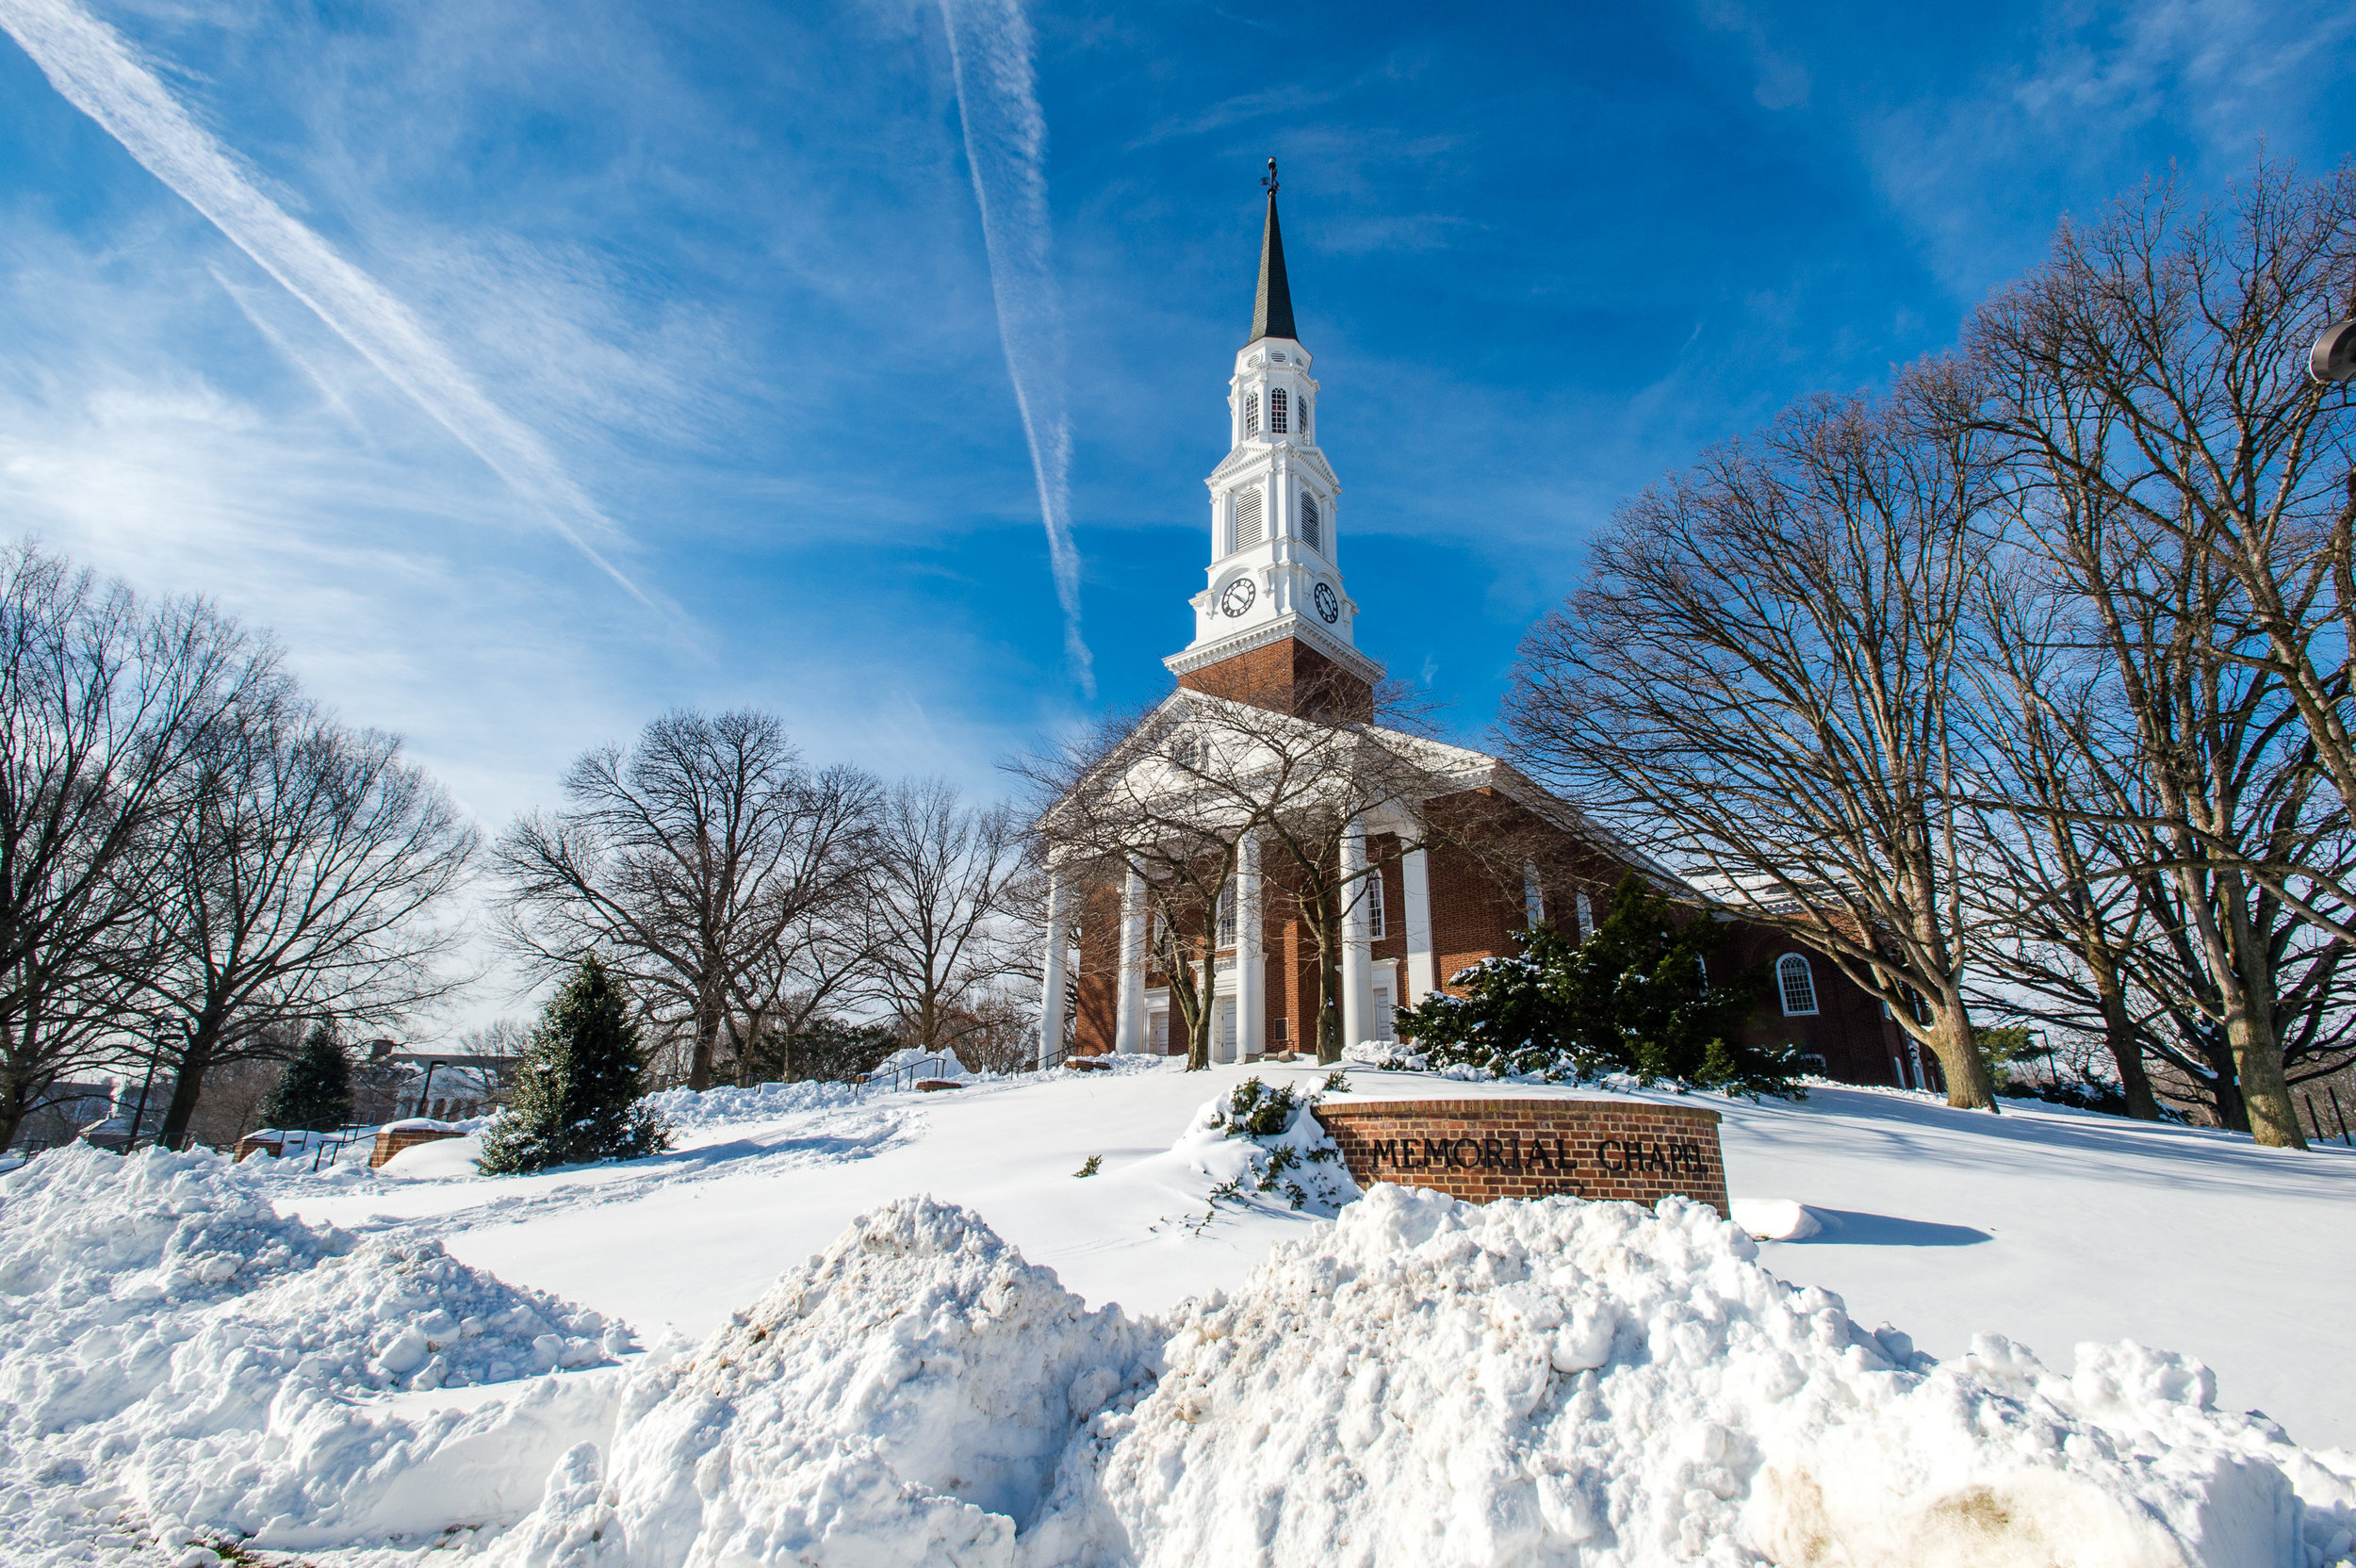 Photo by Edwin Remsberg. The photo shows the University of Maryland's Memorial Chapel covered in snow.